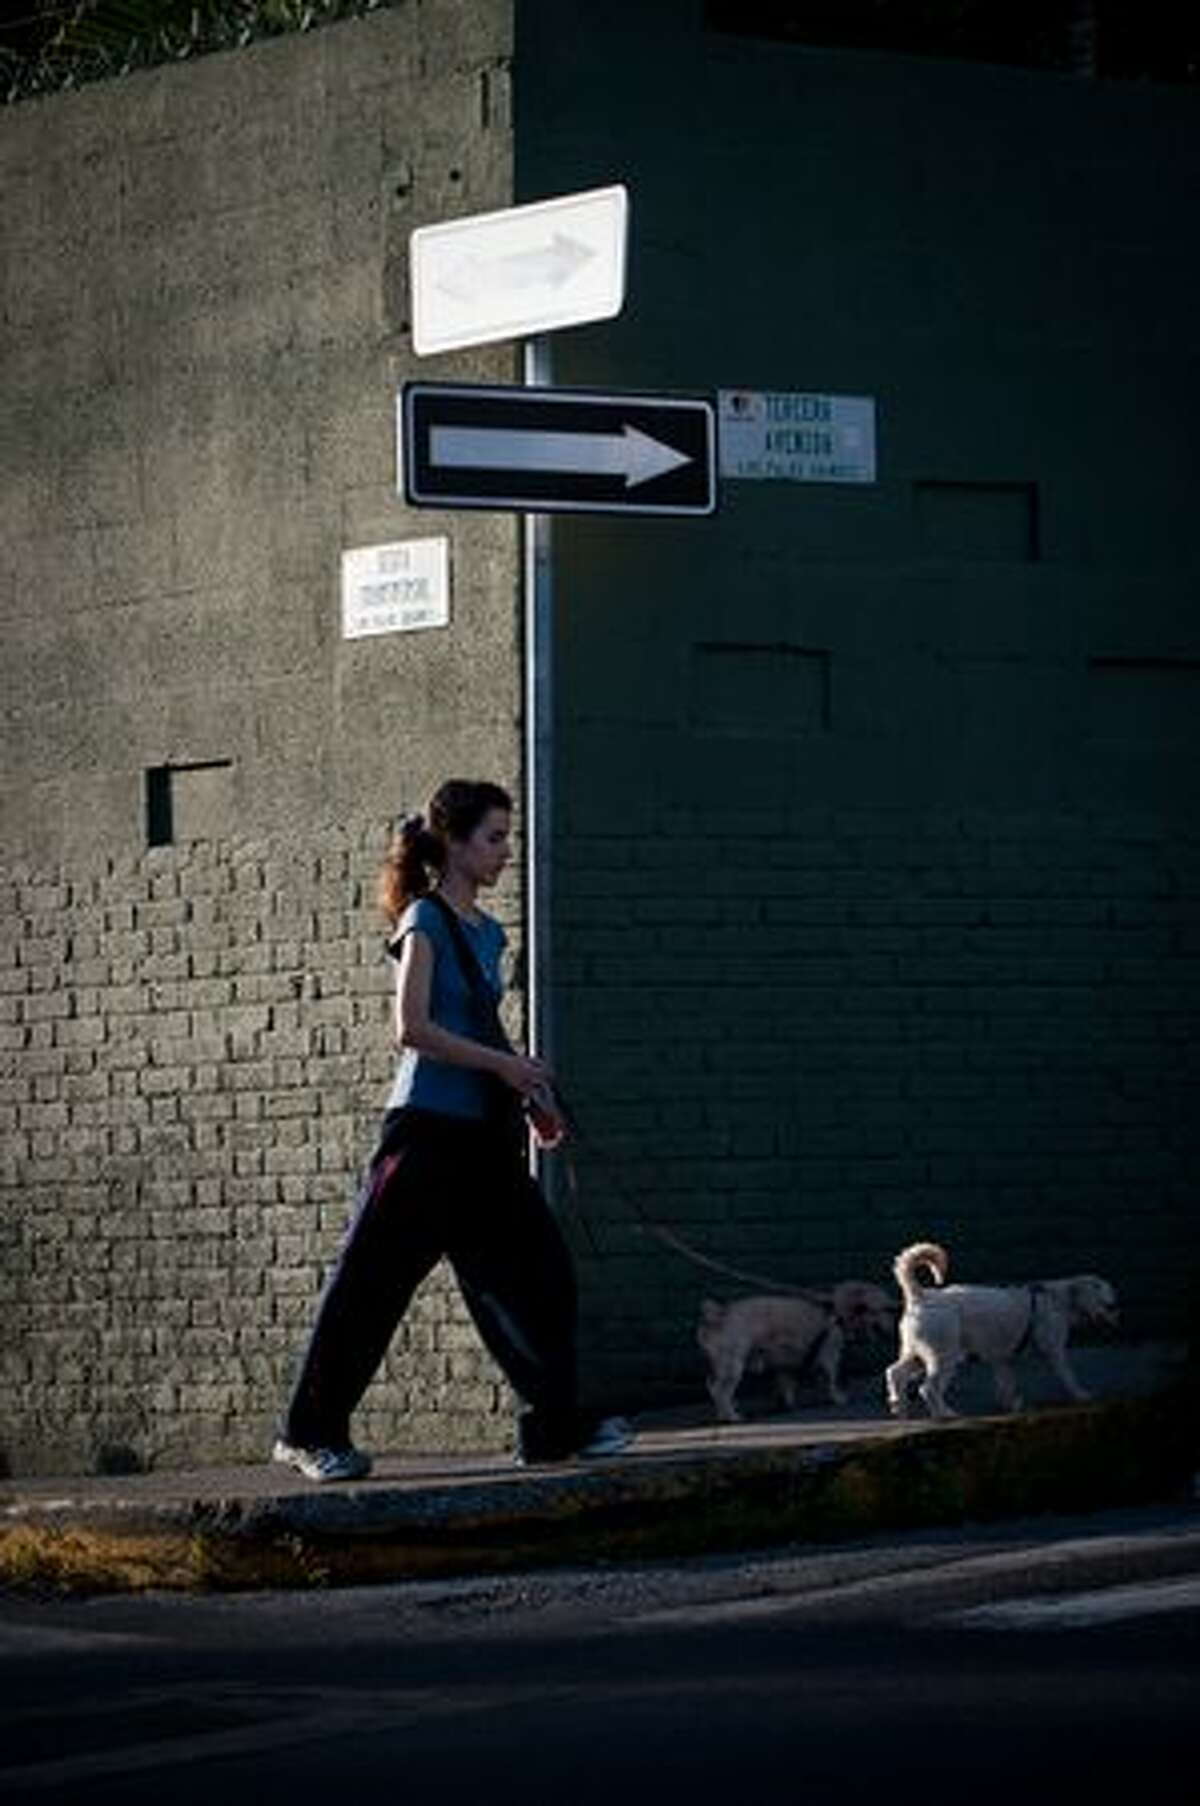 A girl walks past a directional arrows while walking their dogs in a residential area of Caracas, Venezuela on January 6, 2011.